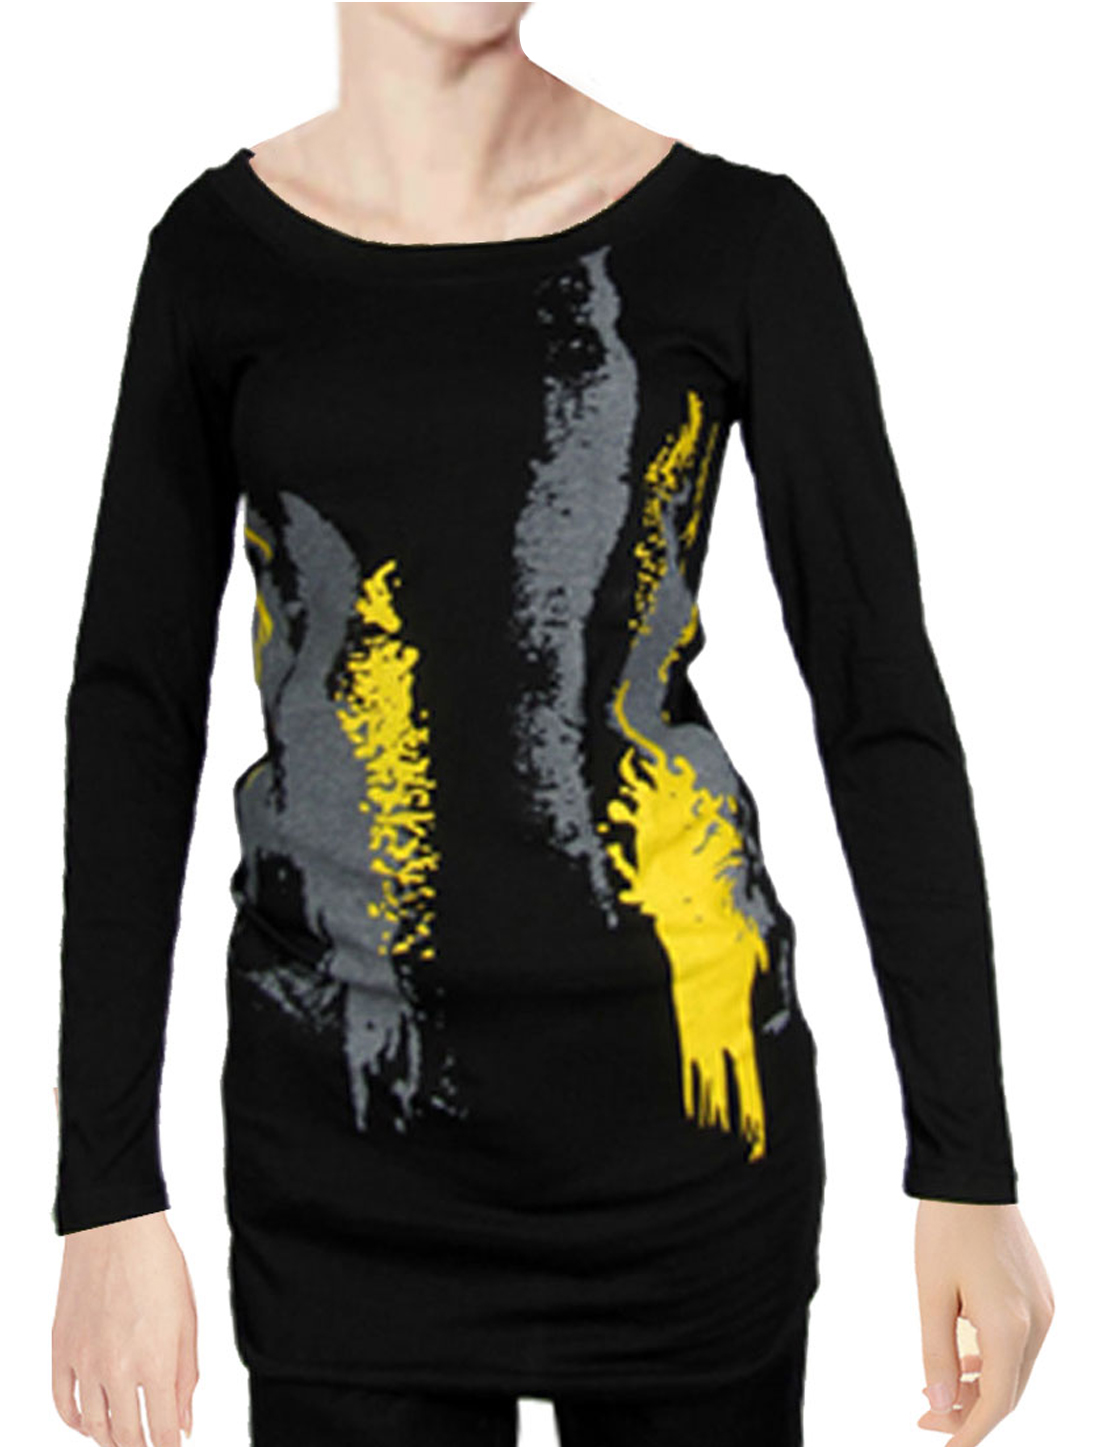 XS Yellow Gray Print Scoop Neck Long Shirt Black for Lady